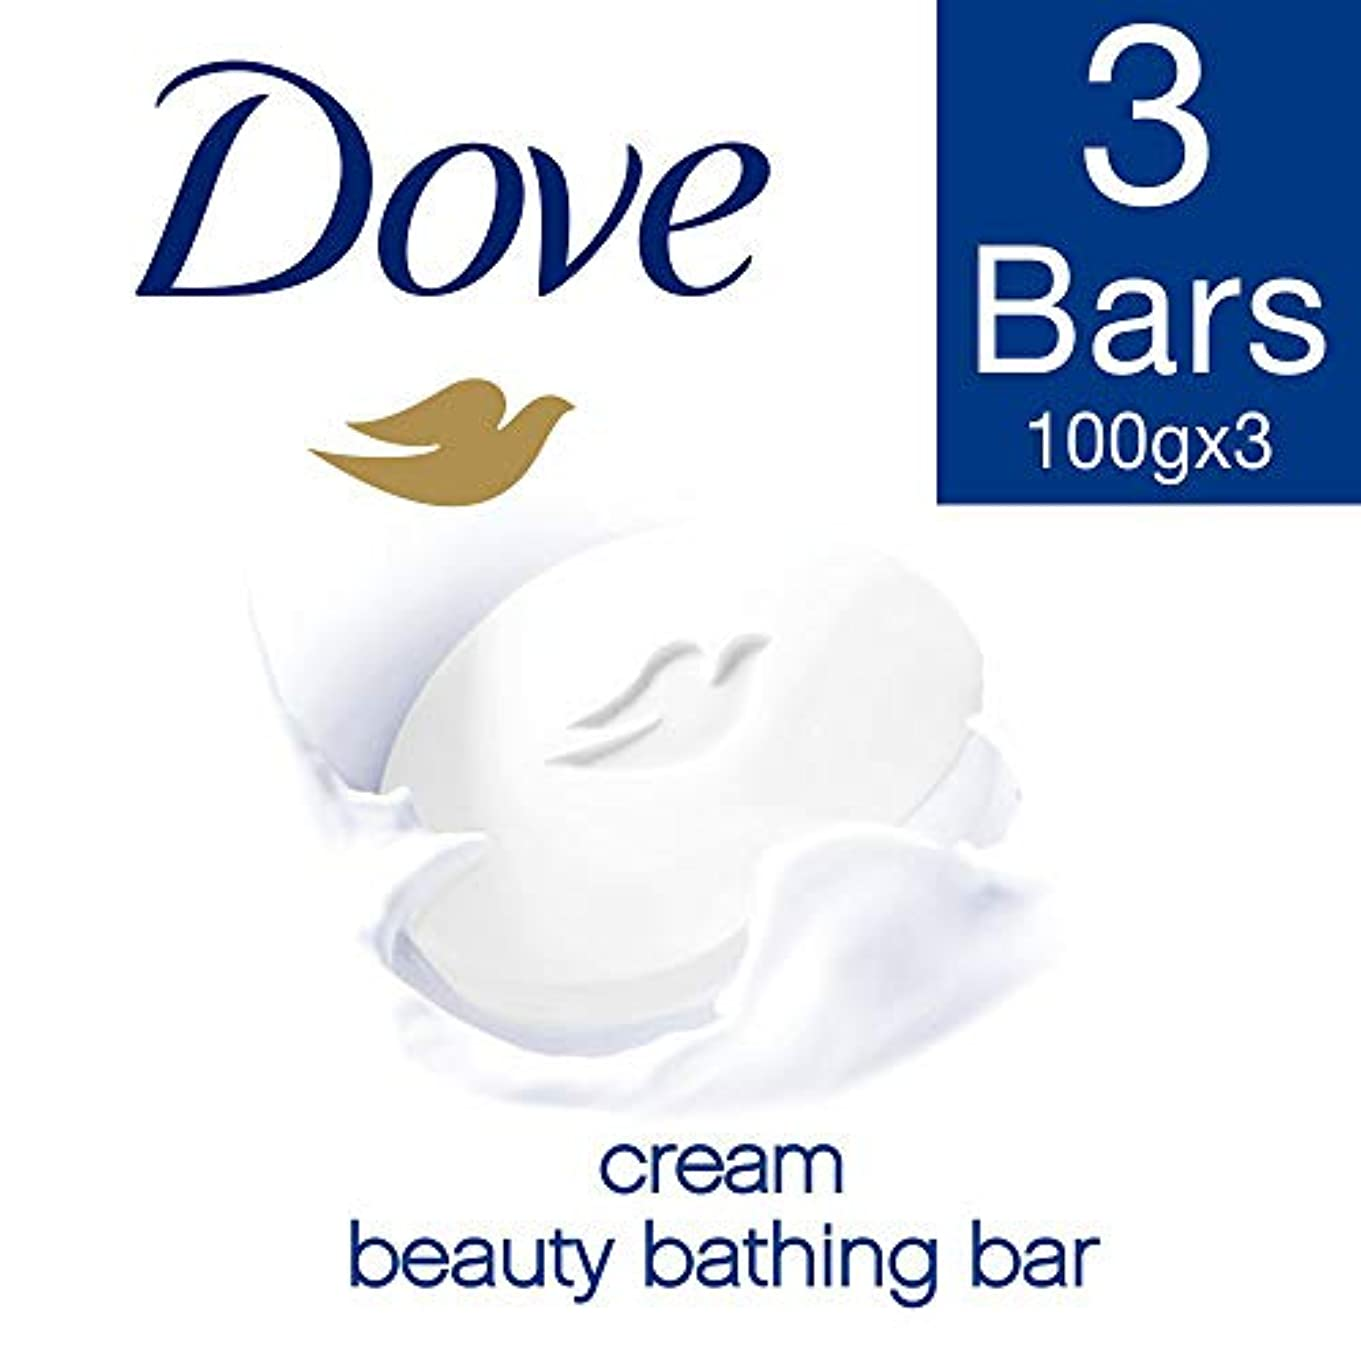 Dove Cream Beauty Bathing Bar, 100g (Pack of 3)